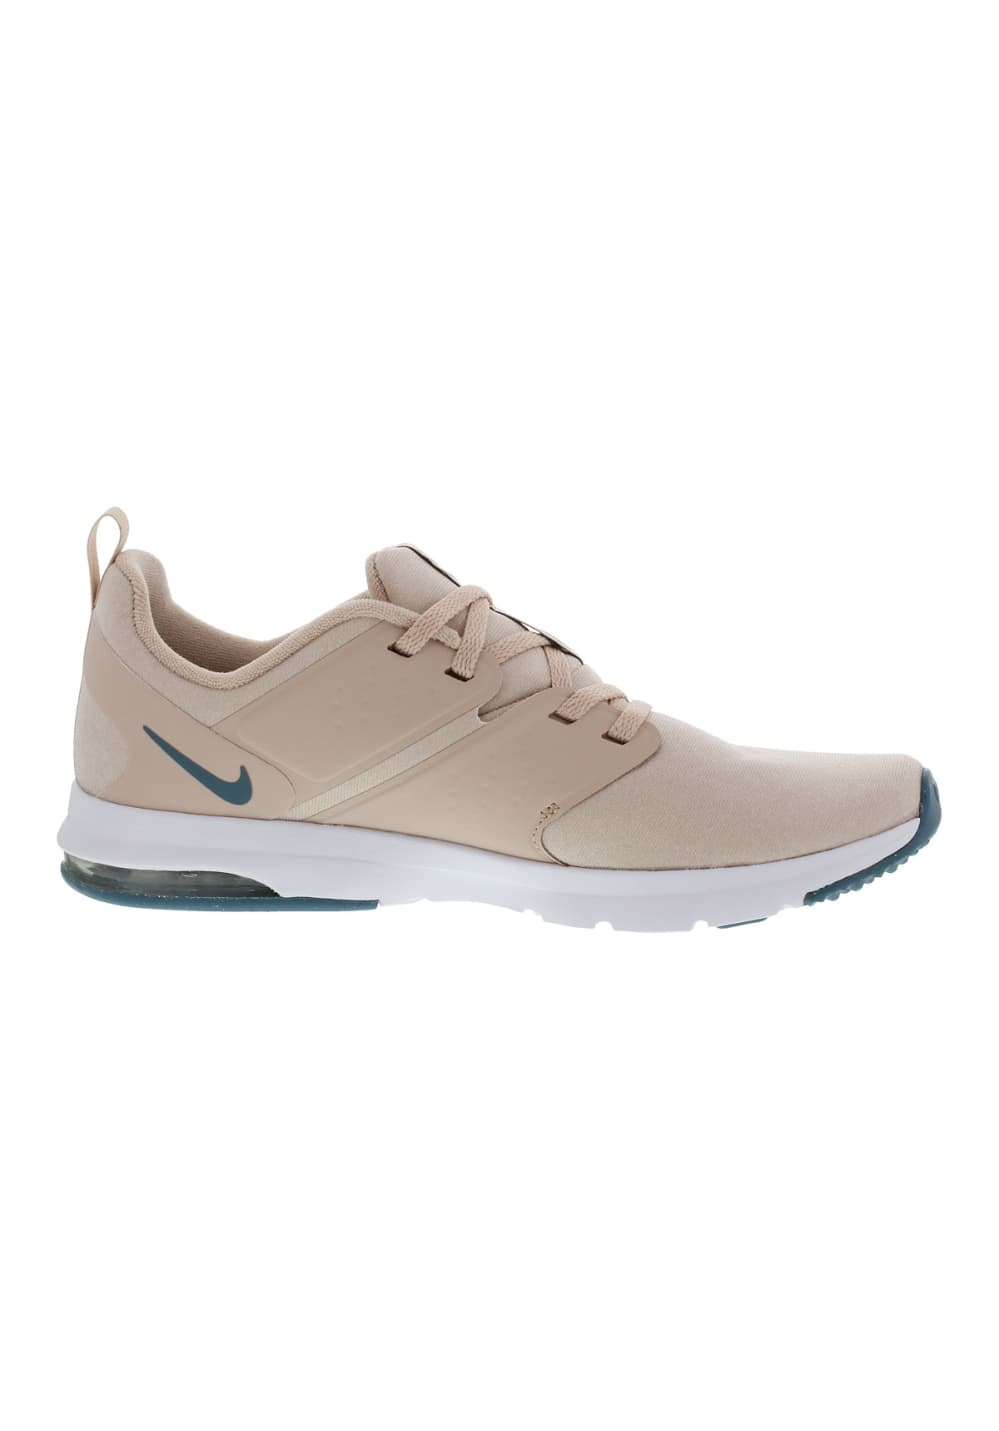 5a1e515cbe Previous. Next. -50%. Nike. Air Bella Tr - Fitness shoes for Women